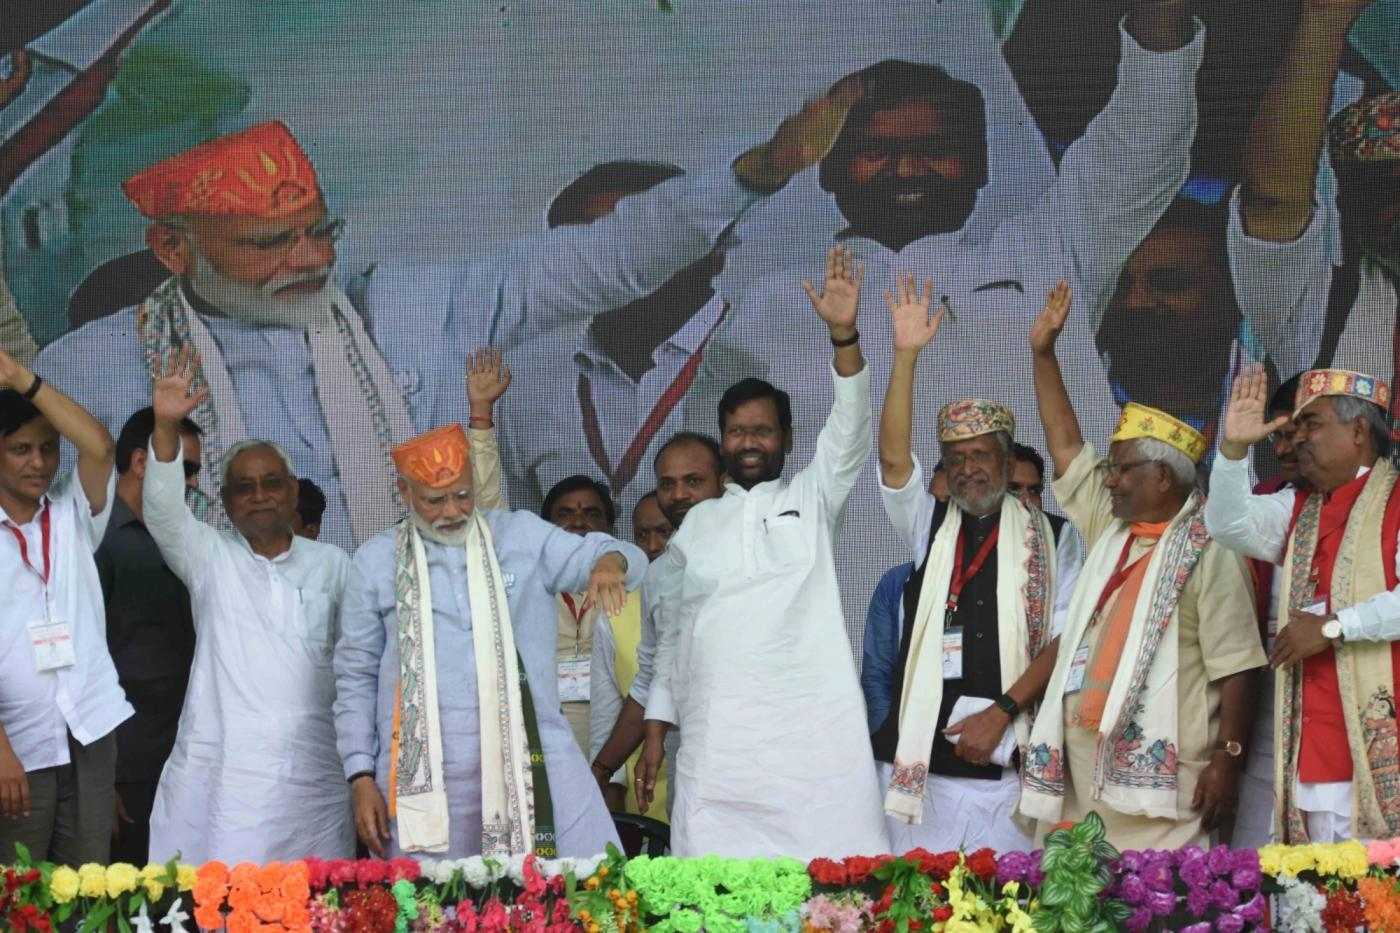 Darbhanga: Prime Minister Narendra Modi accompanied by Bihar Chief Minister Nitish Kumar, Deputy Chief Minister Sushil Kumar Modi and Union Minister Ram Vilas Paswan, waves to crowd during a public rally in Darbhanga, Bihar, on April 25, 2019. (Photo: IANS) by .